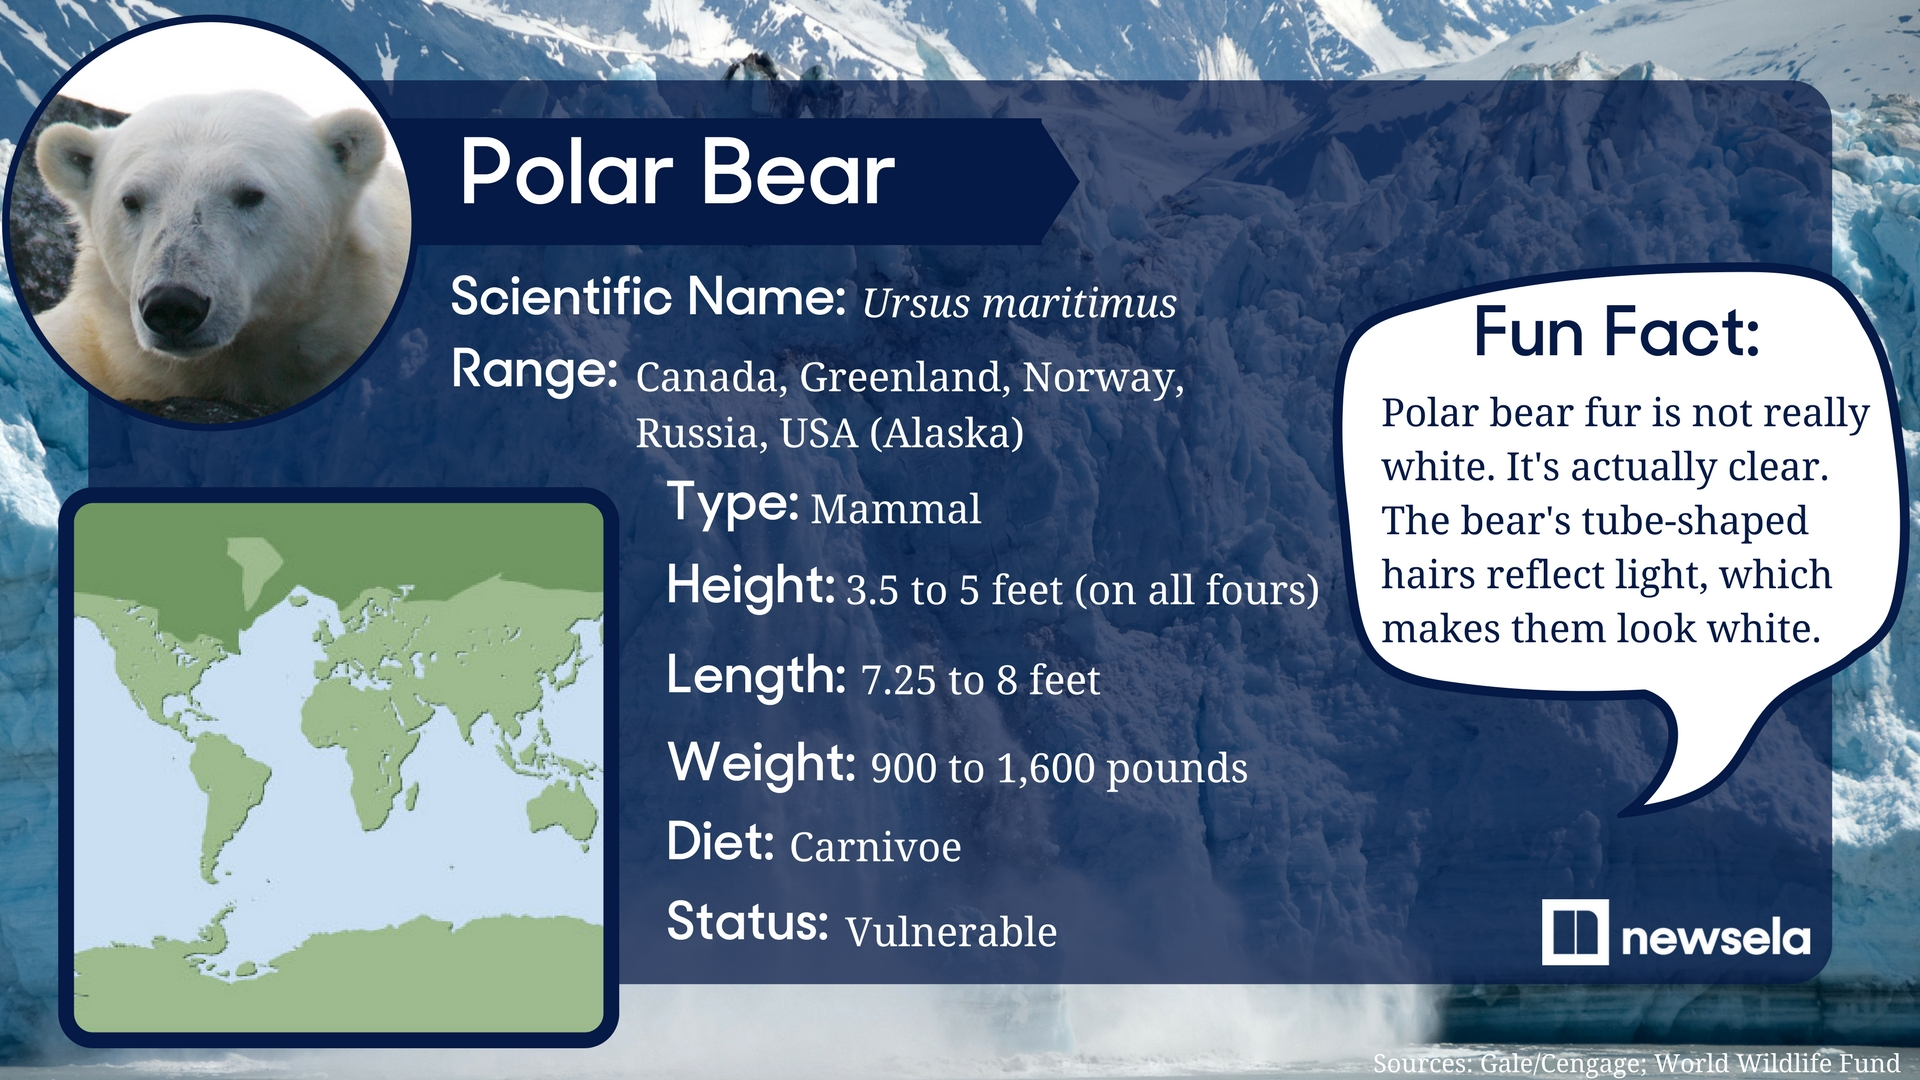 an analysis of the polar bears in the endangered species act Polar bears have it rough nrdc, and greenpeace, polar bears were given threatened species status under the us endangered species act in 2008.